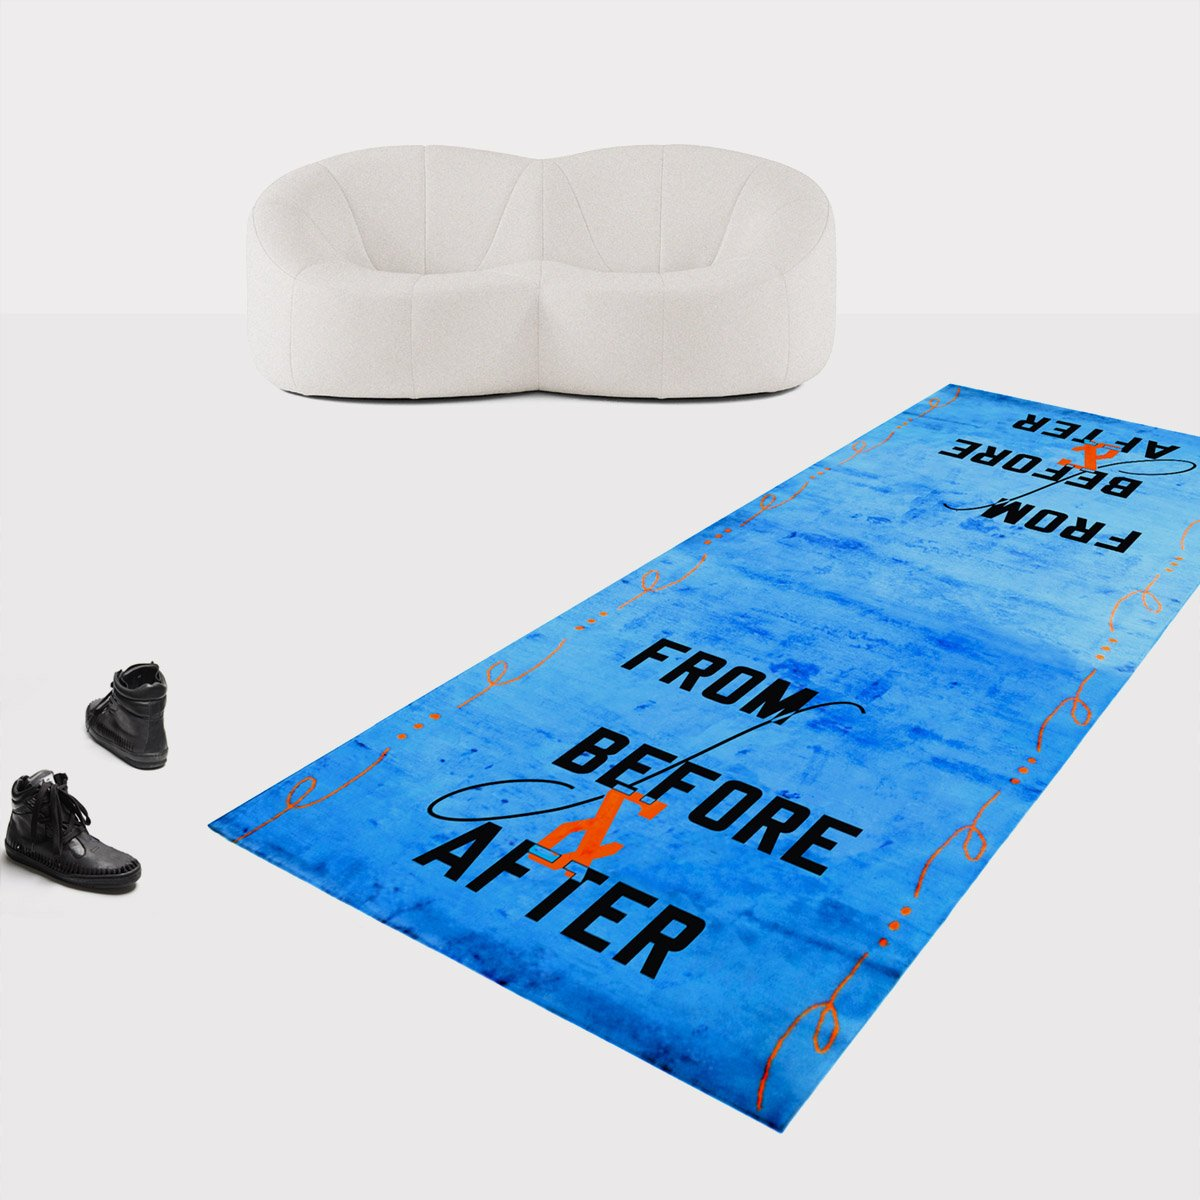 LAWRENCE WEINER, FROM BEFORE AND AFTER, 2018 (QS)